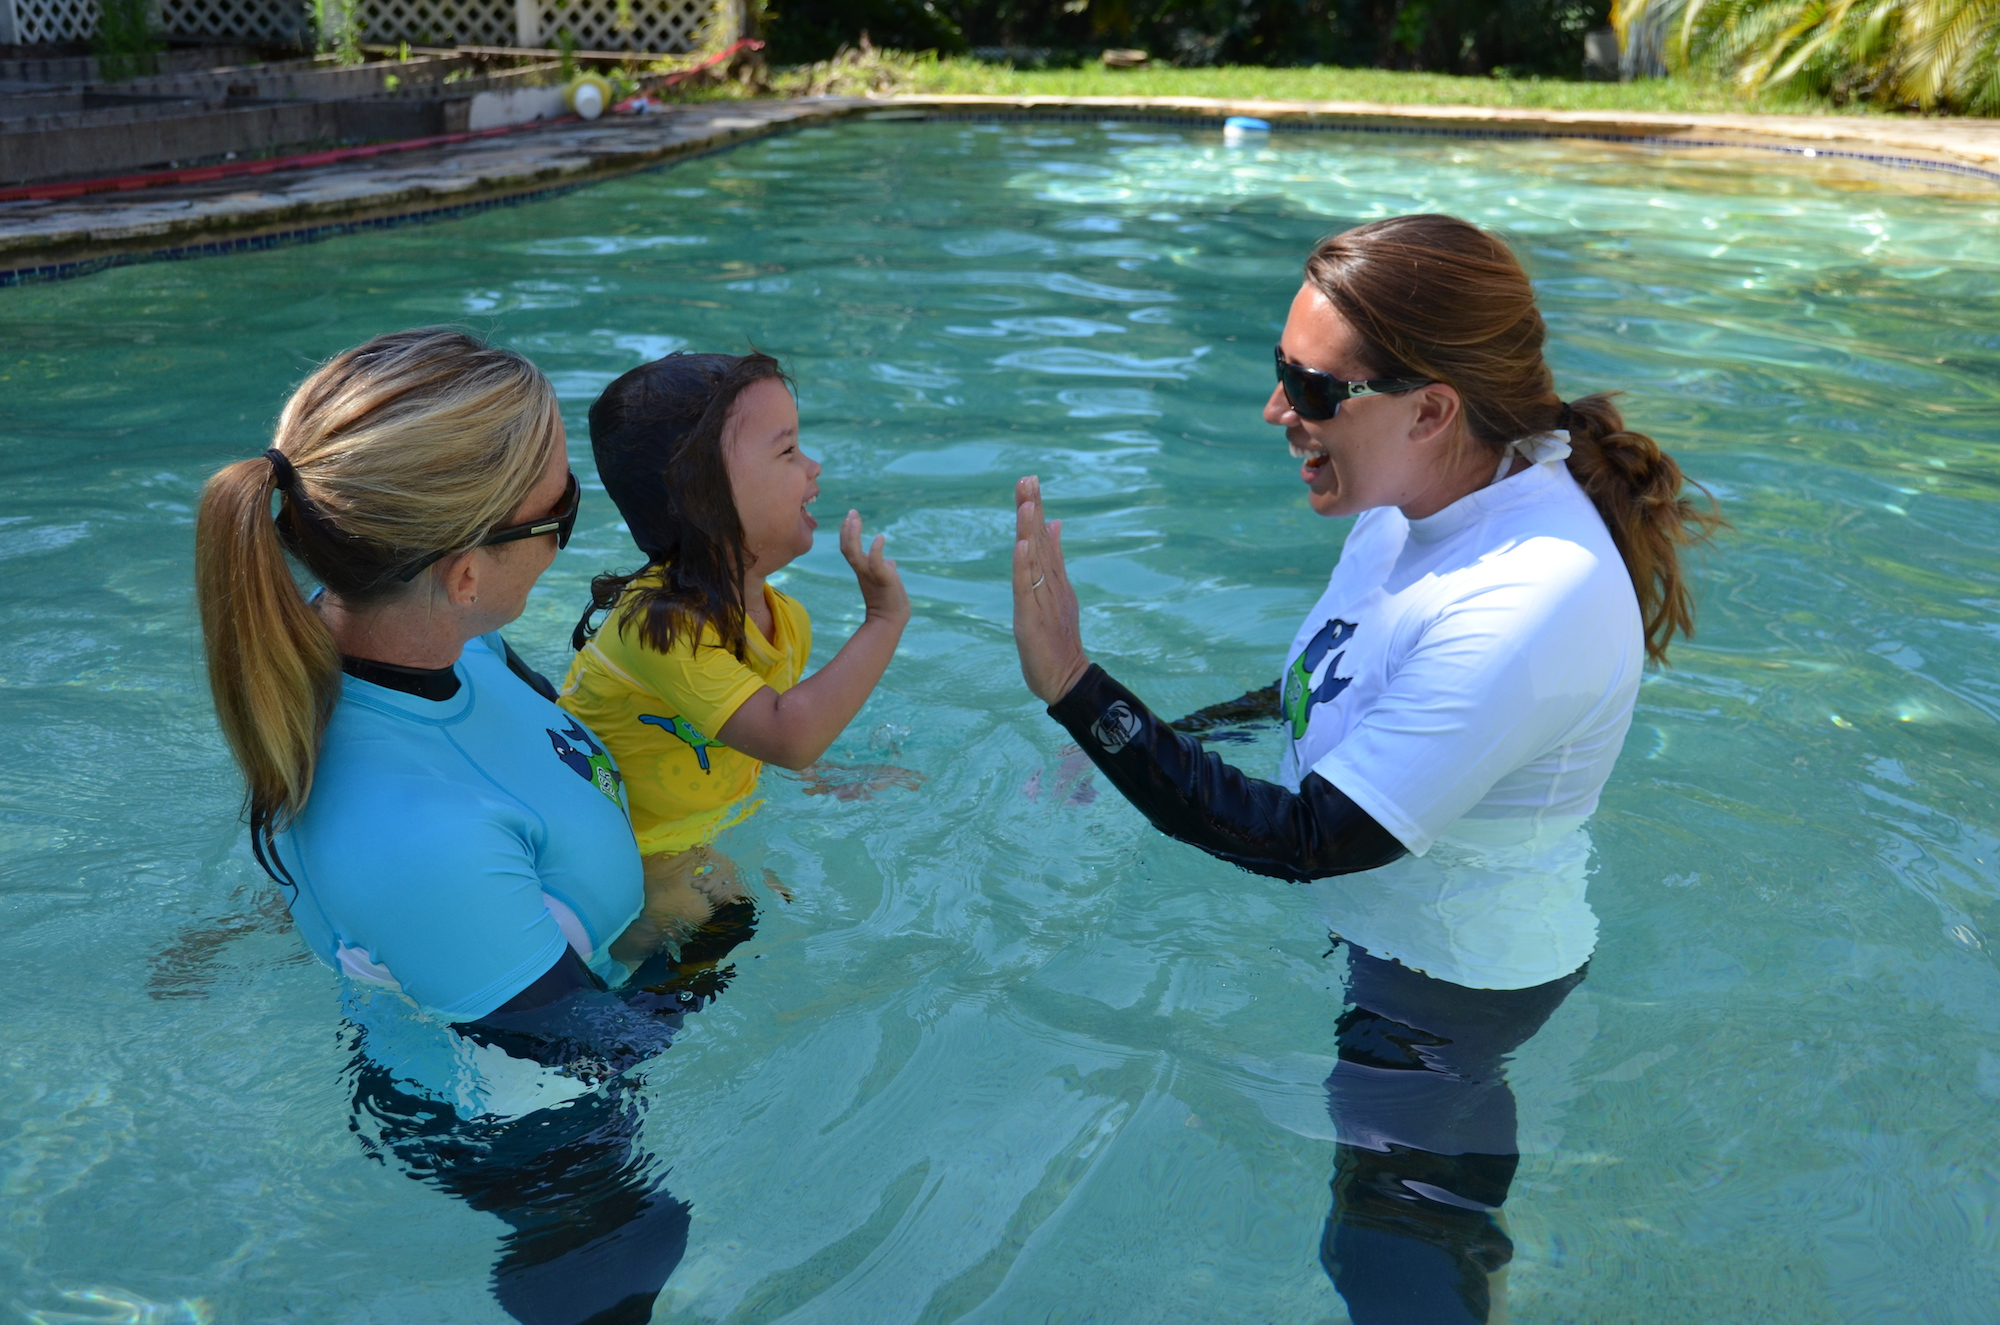 Kelli Roop, ISR Master Instructor with Kate Armentano, ISR Instructor